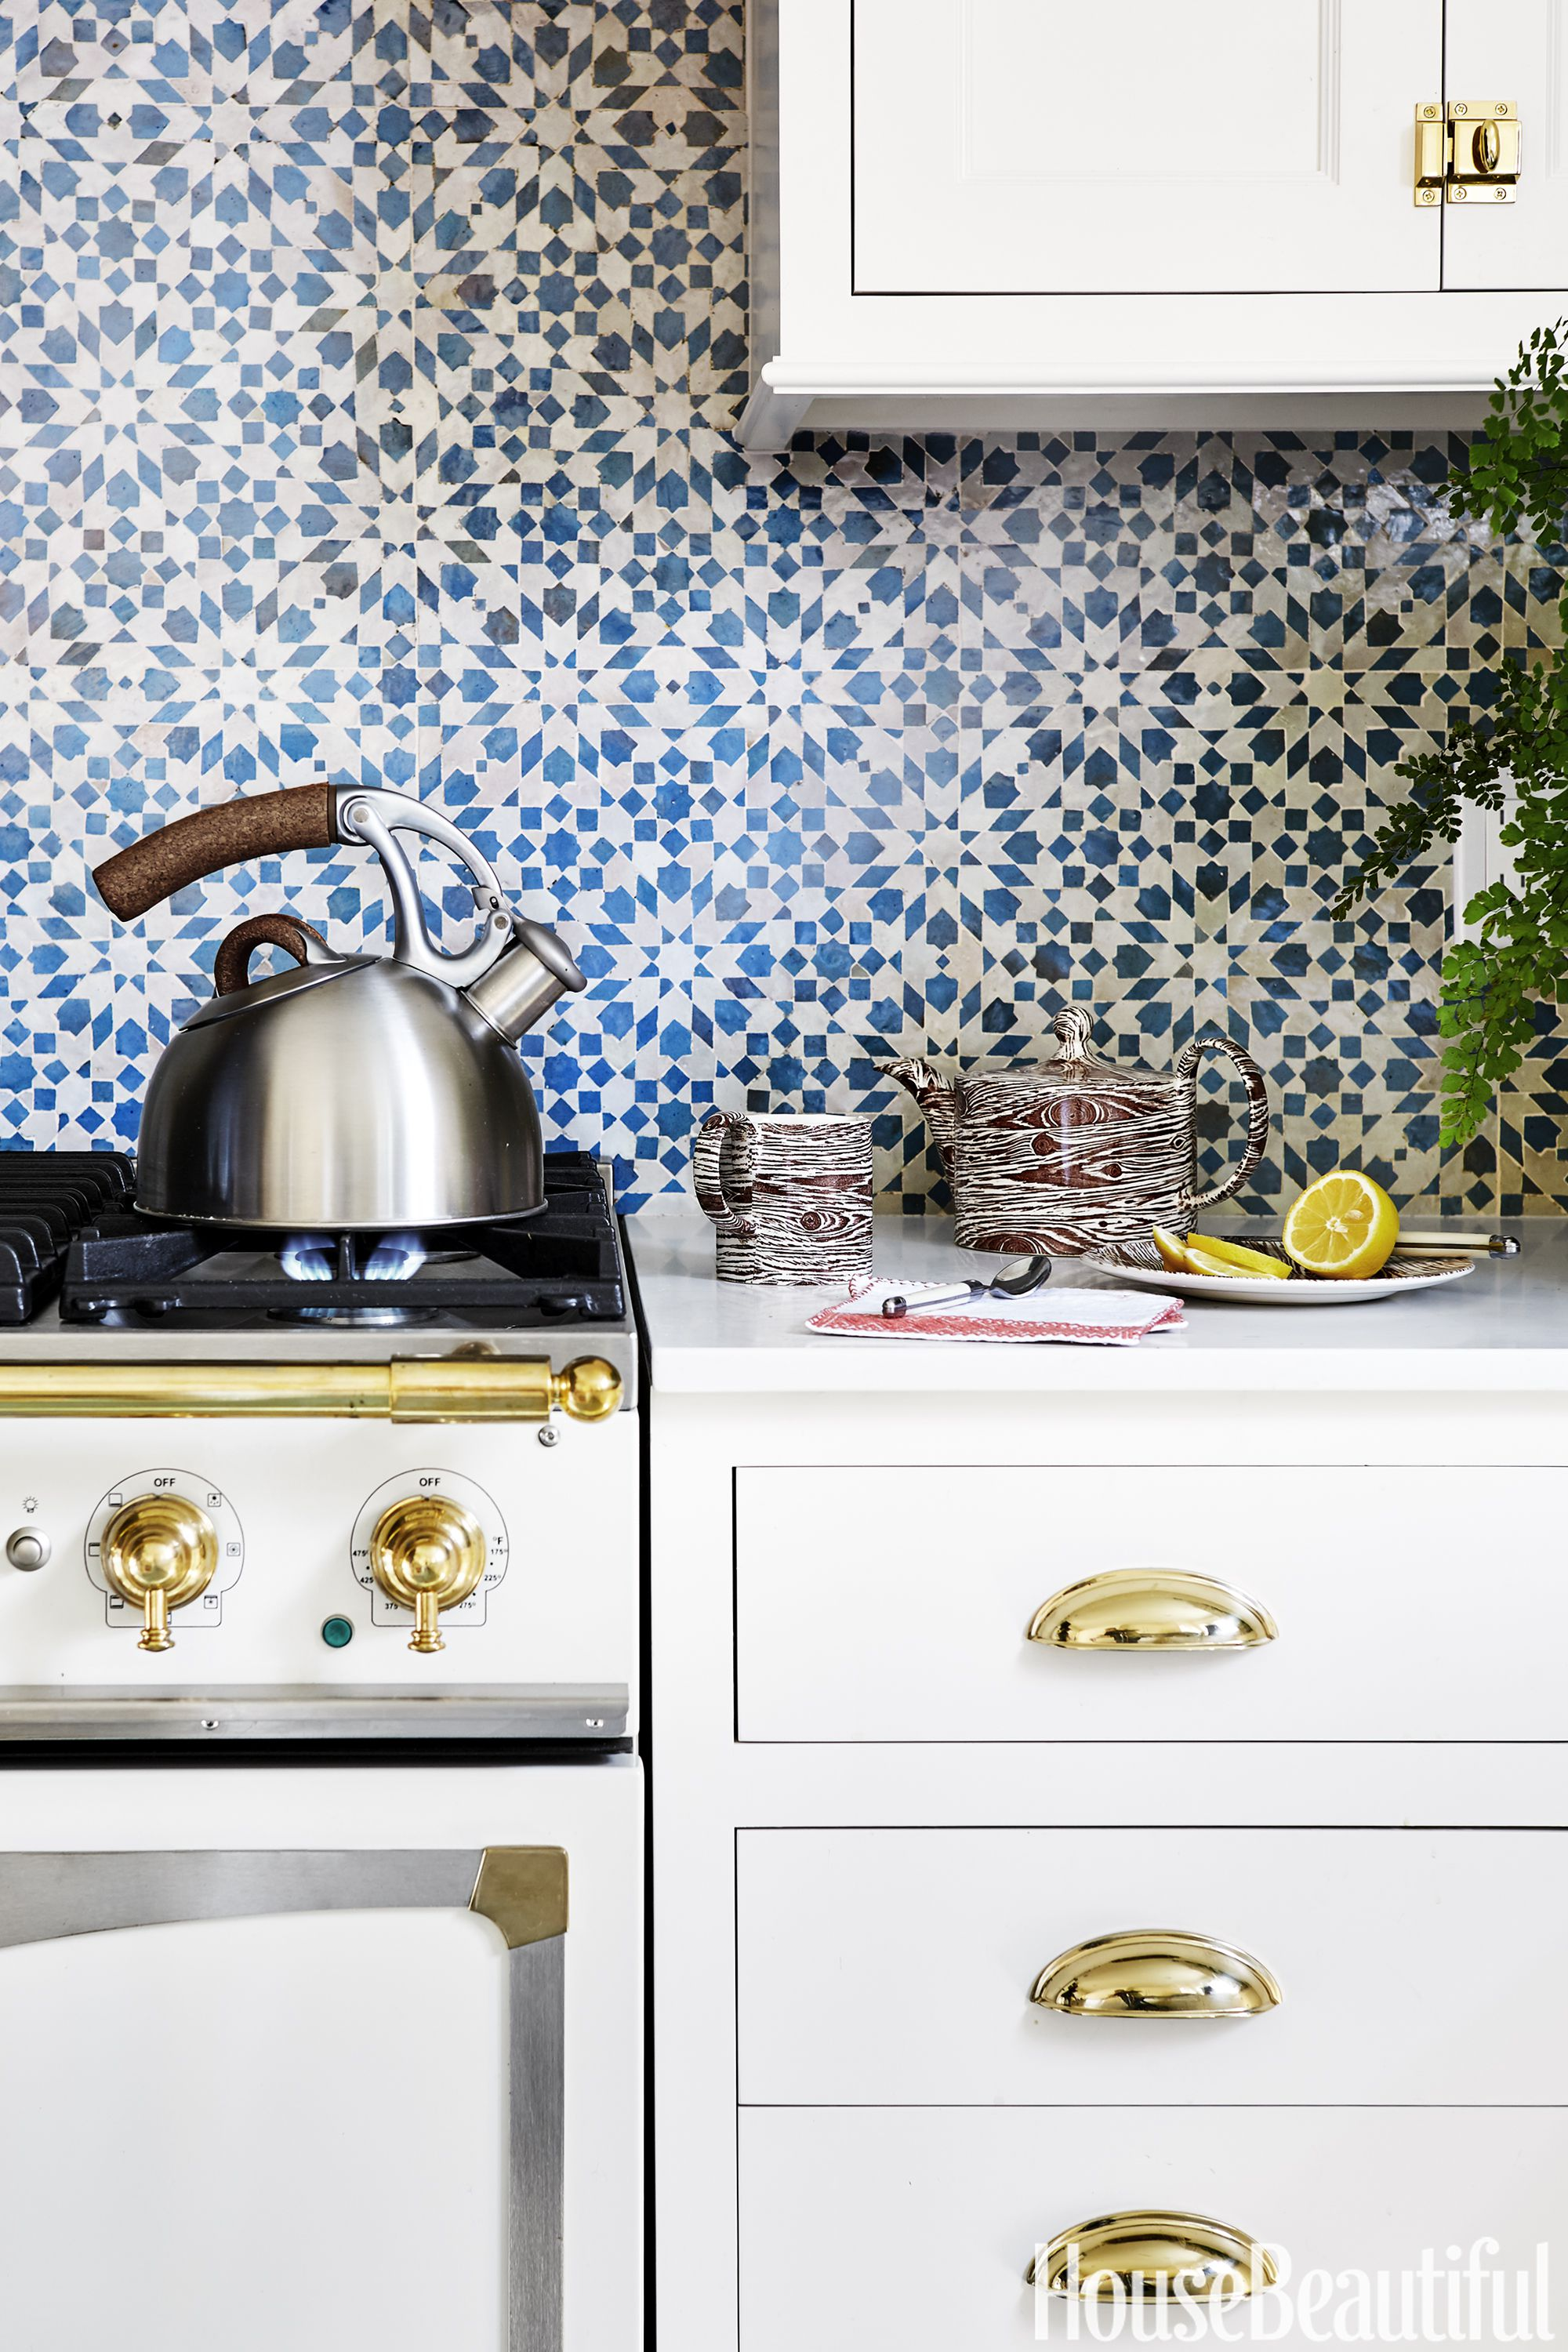 Kitchen back wall tiles Best ideas for kitchen back walls - Tile designs for kitchen back walls UHJFDIJ